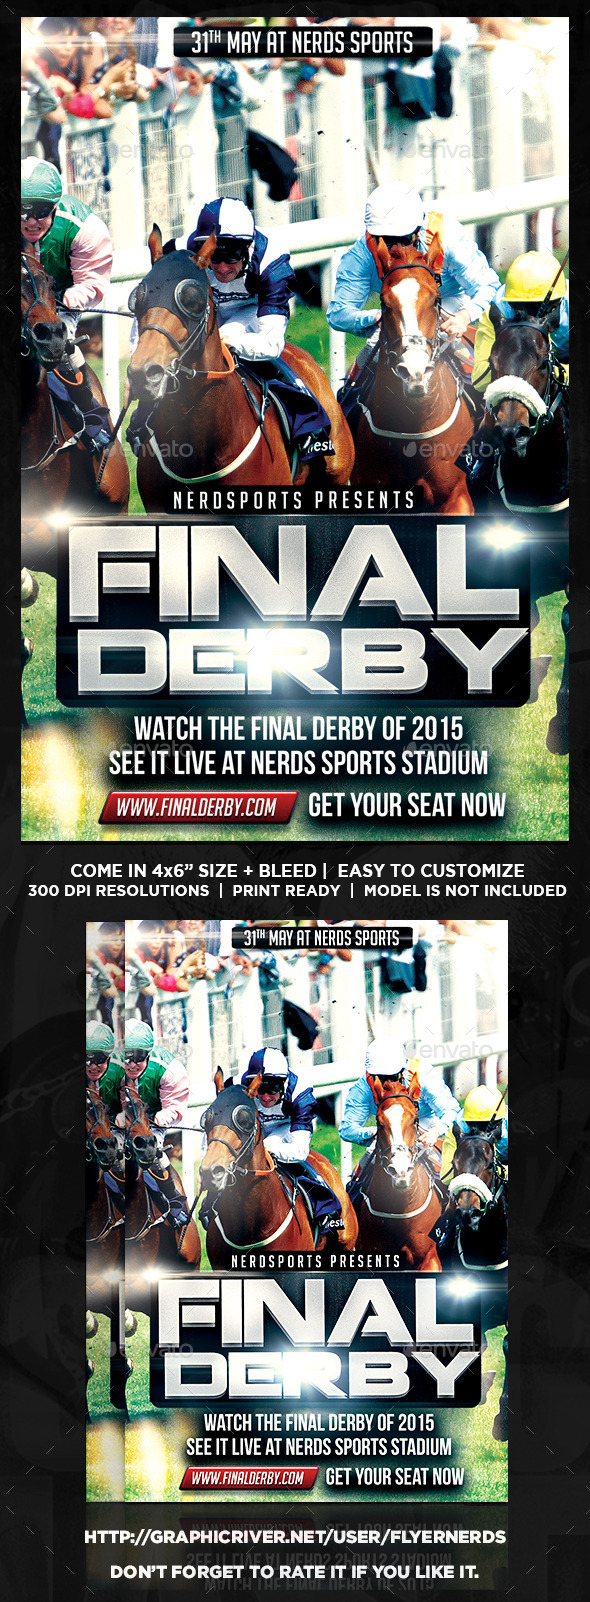 final derby horse racing championships flyer sports events